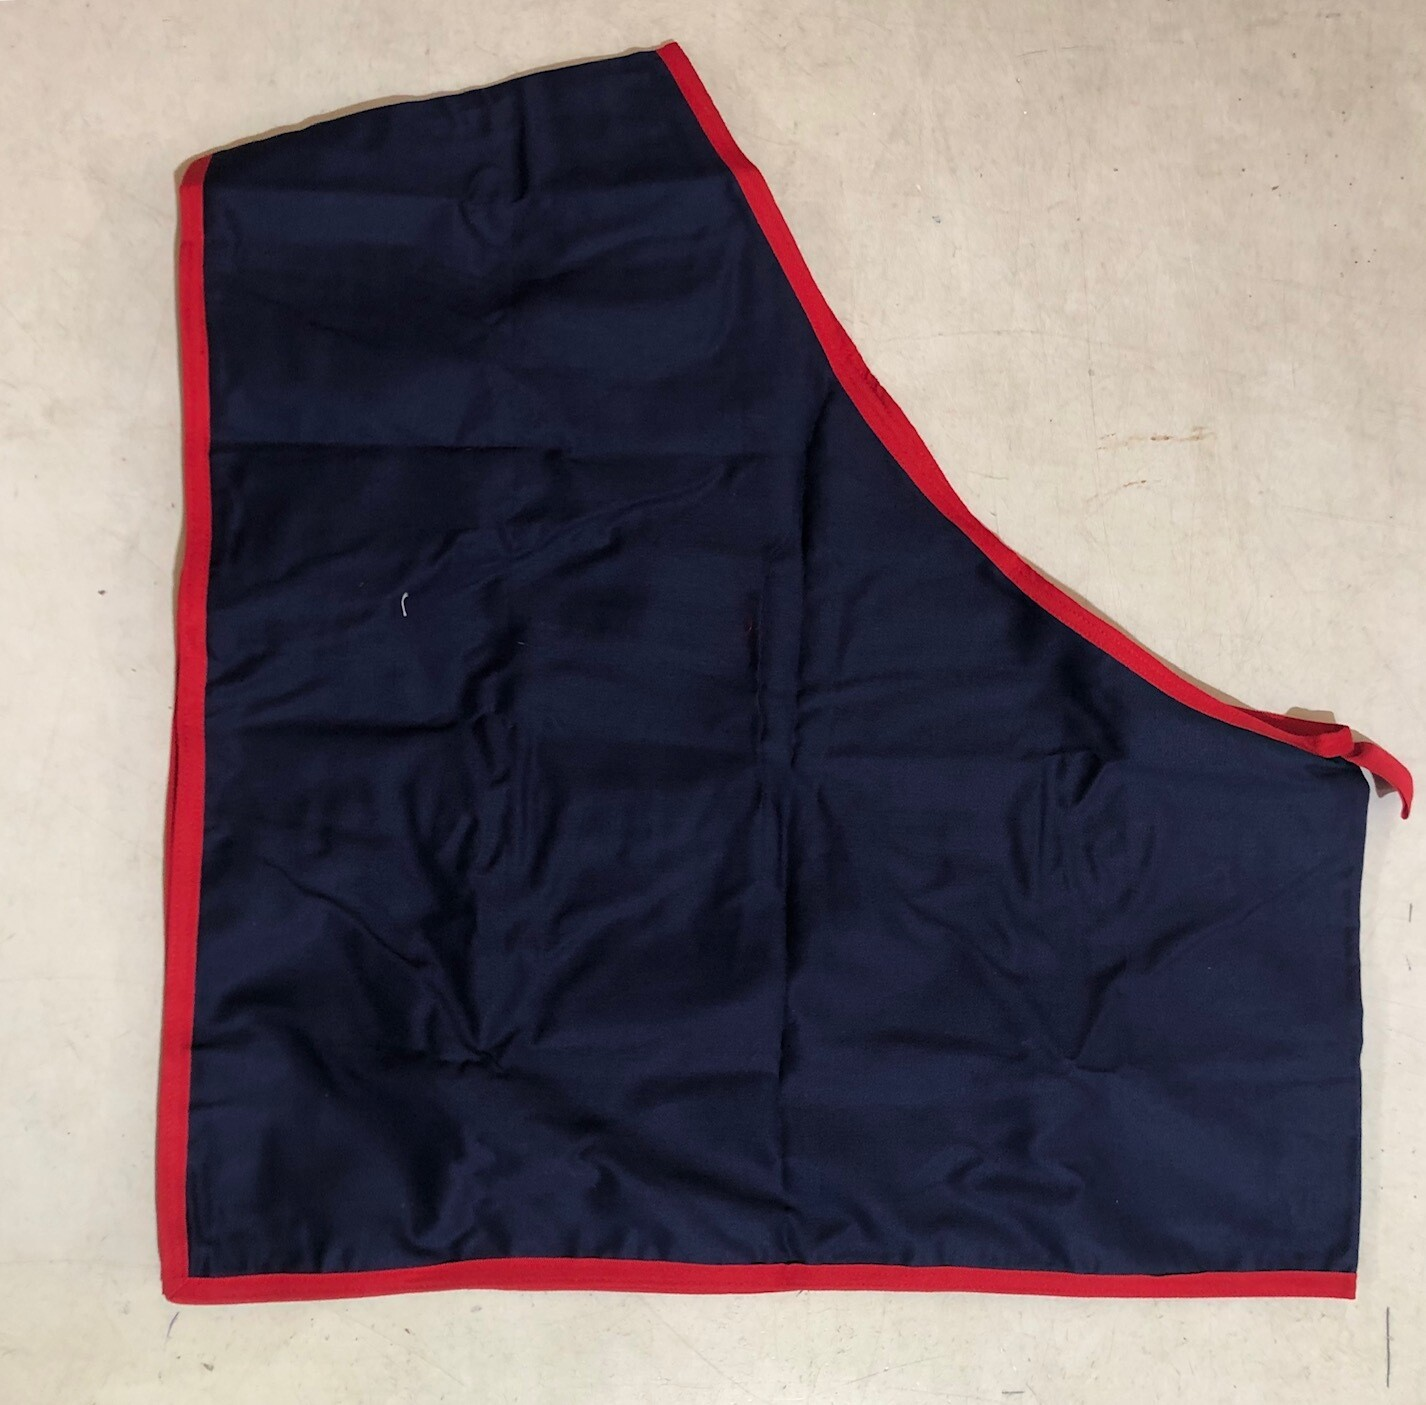 5'9 Bib cotton